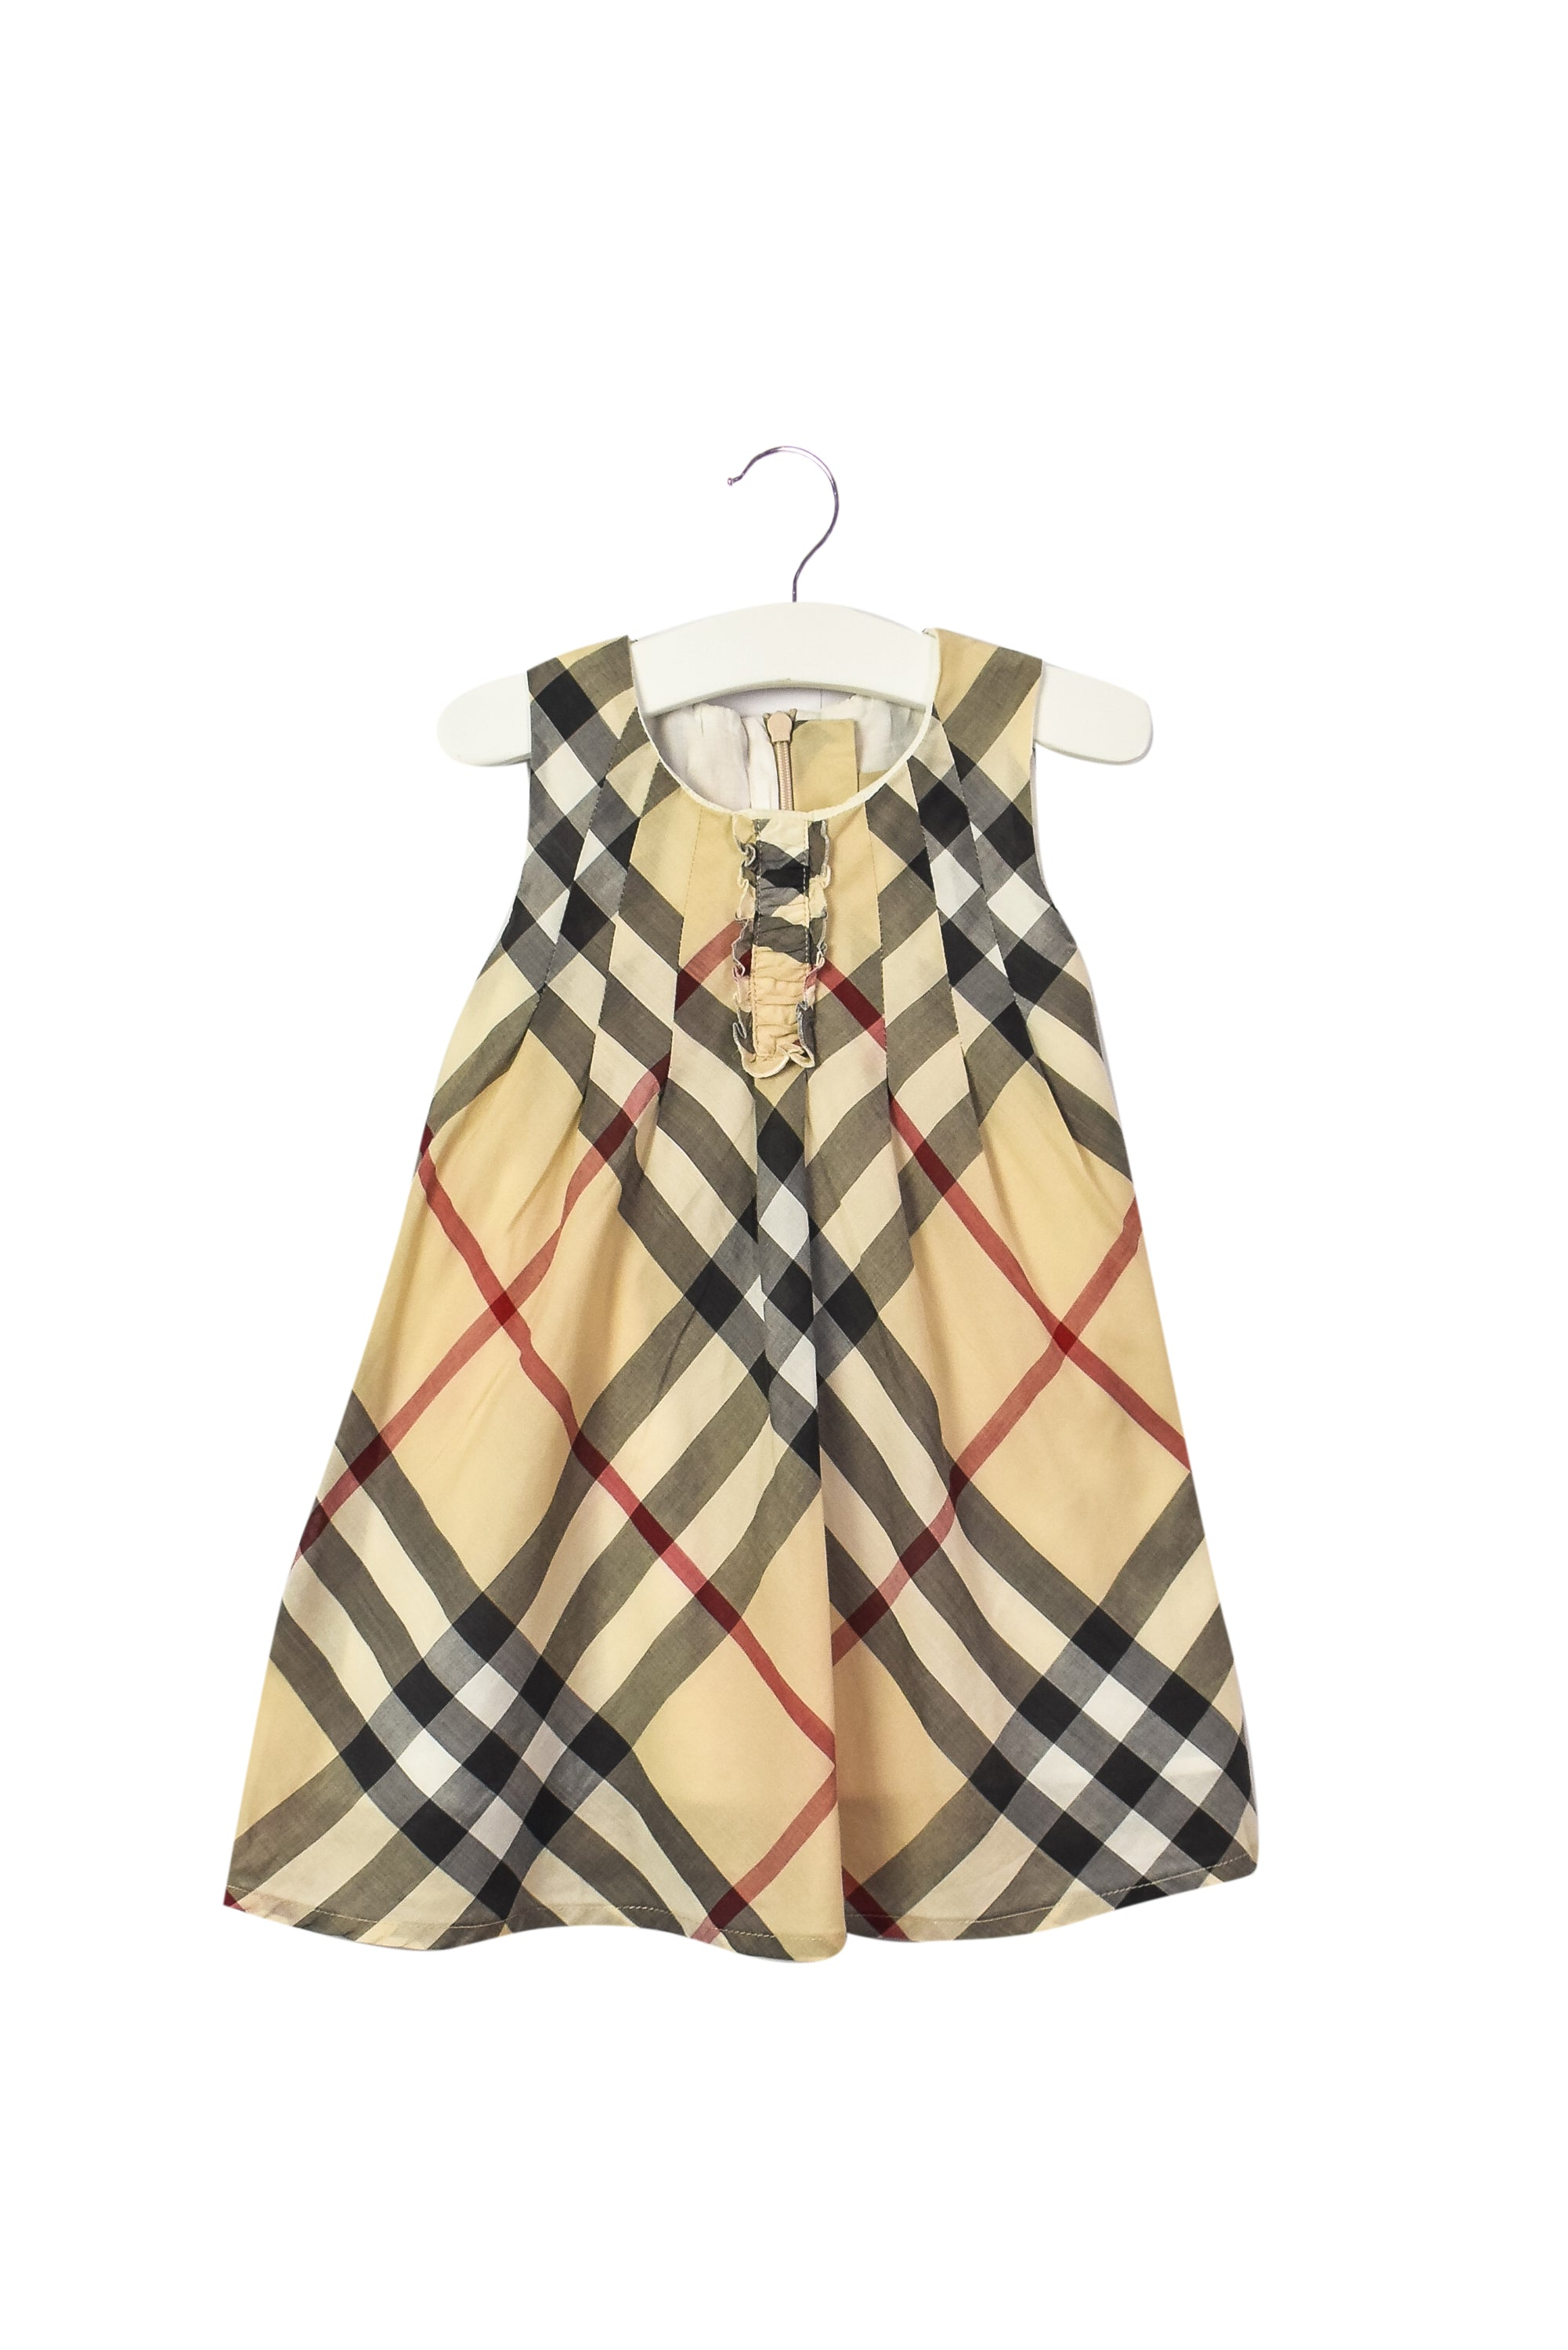 10035398 Burberry Baby~Dress 12M at Retykle